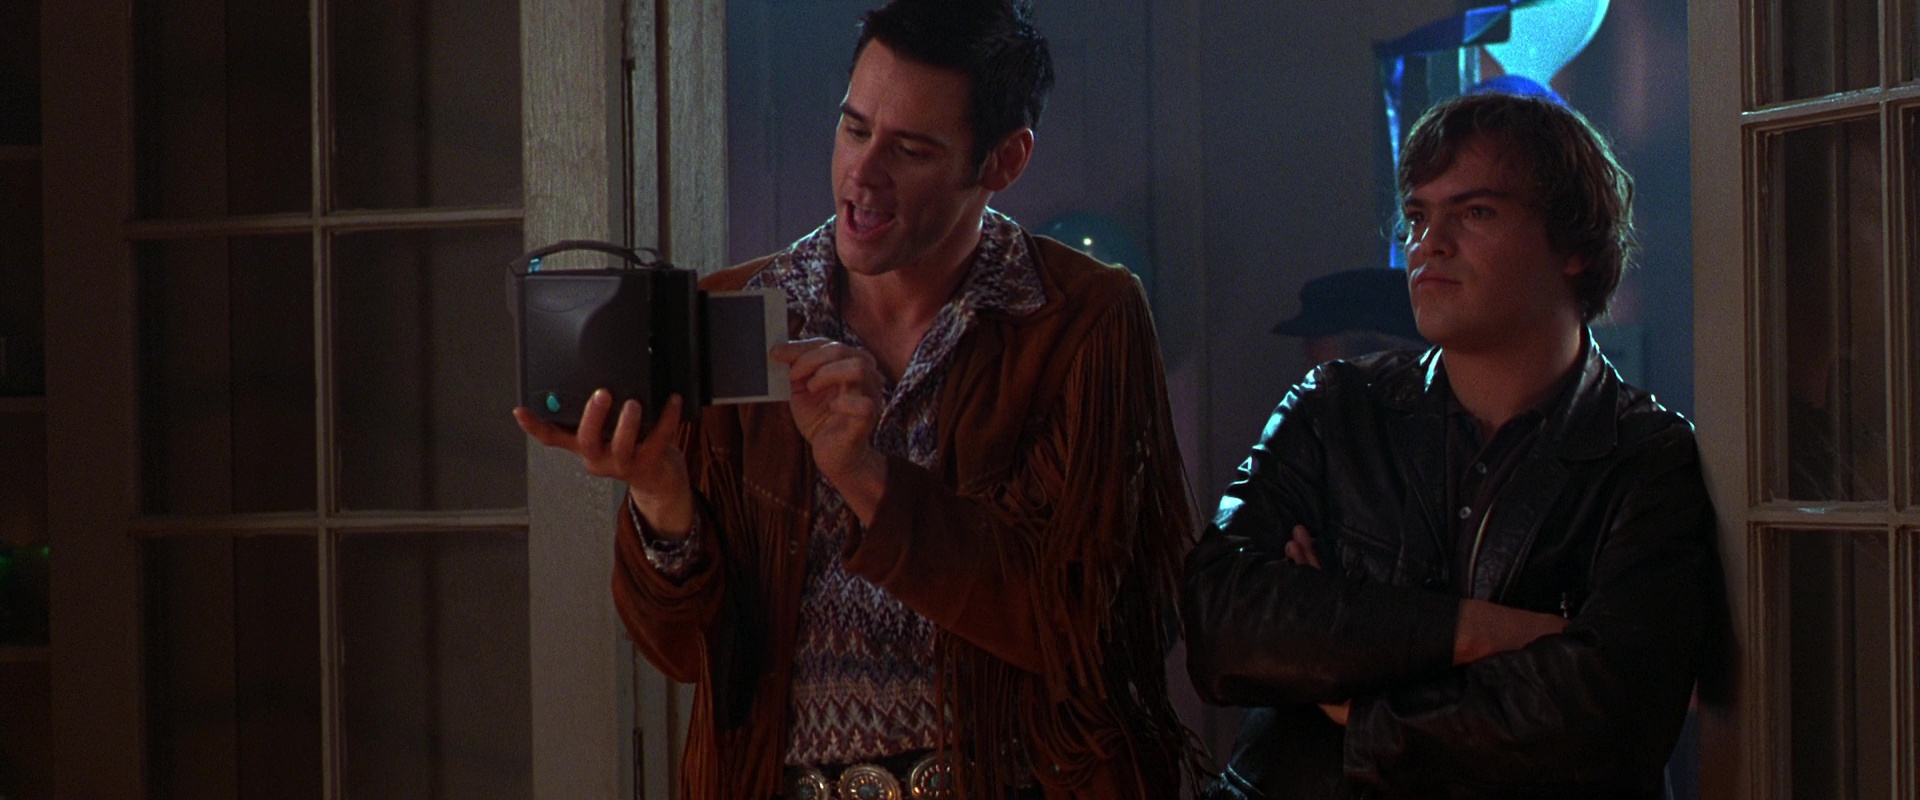 Polaroid-Camera-Used-by-Jim-Carrey-in-The-Cable-Guy-1.jpg